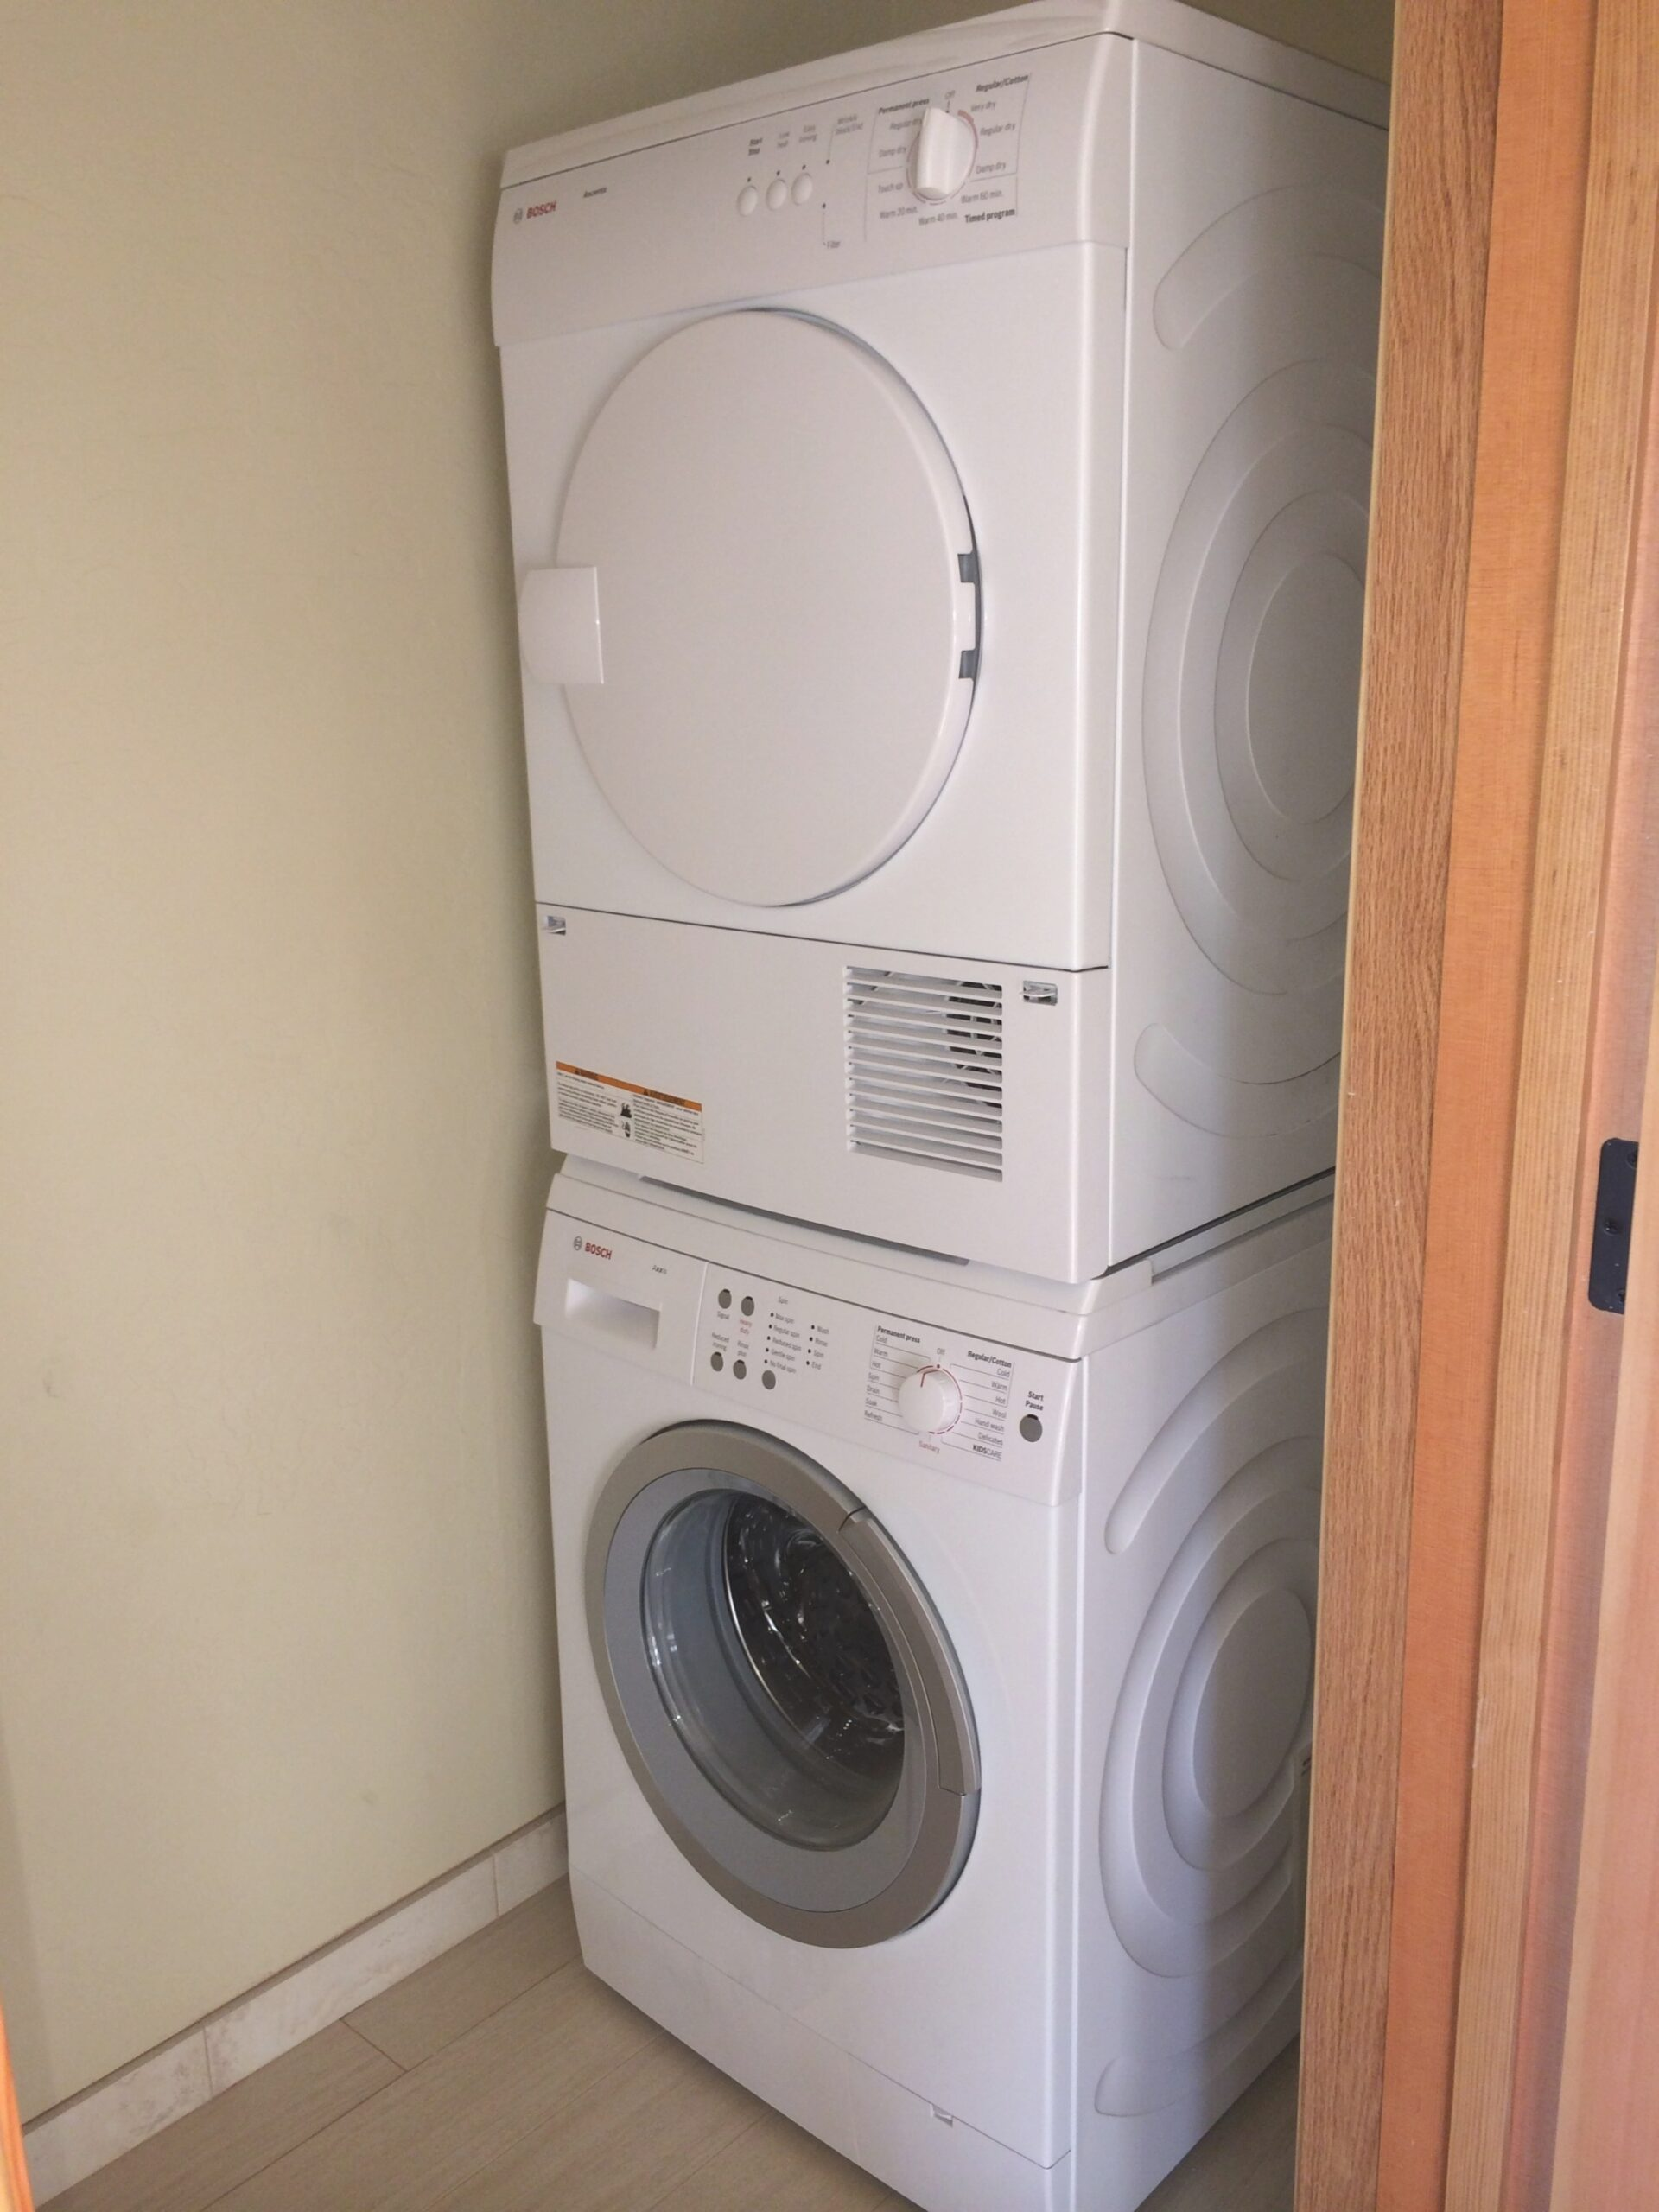 Small Stackable Washer Dryer Combo – Homesfeed with Washer Dryer Combo In Bathroom